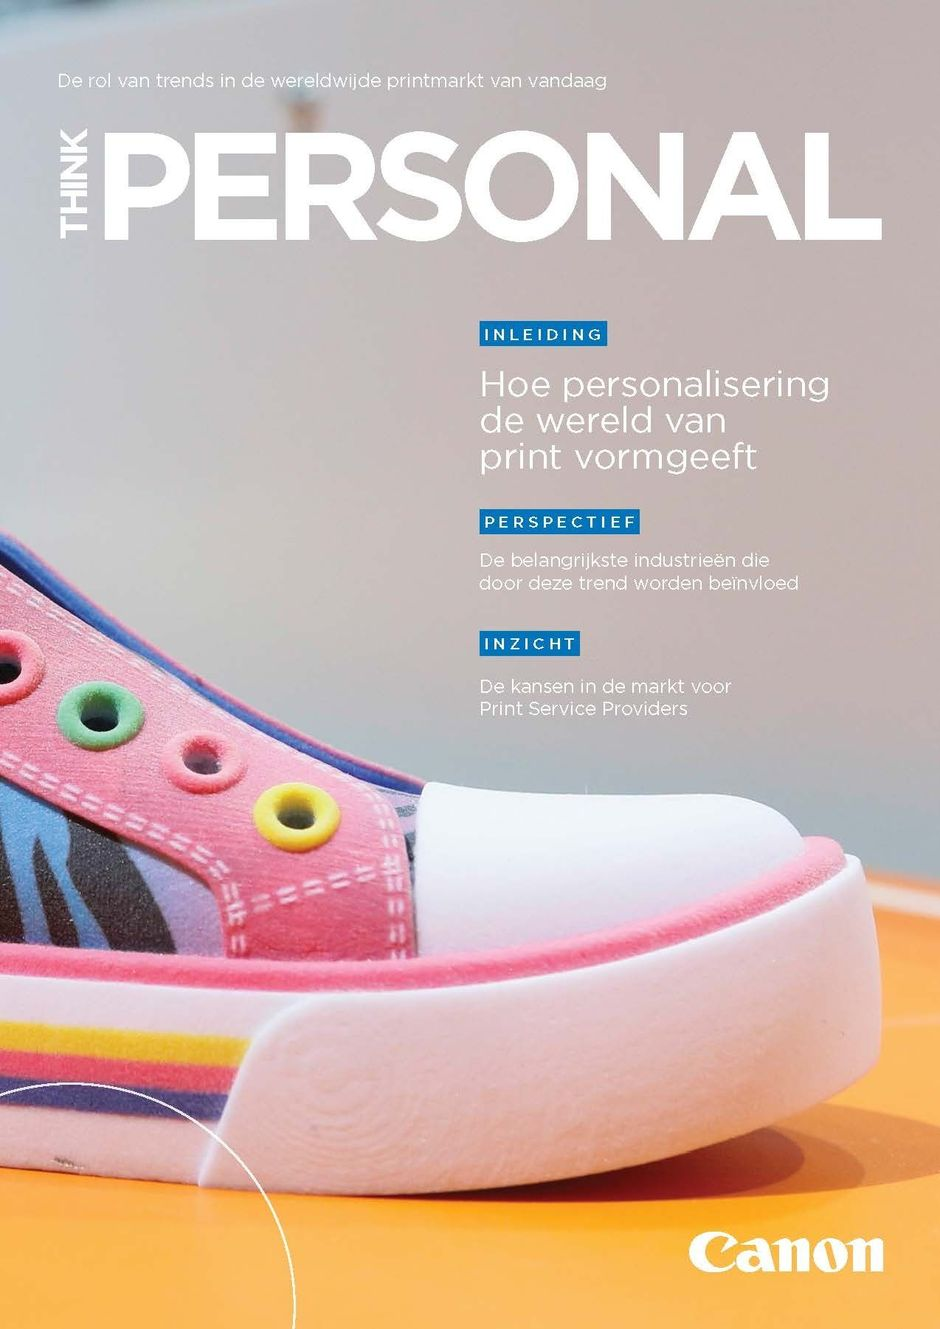 Canon: Download de Think Personal guide